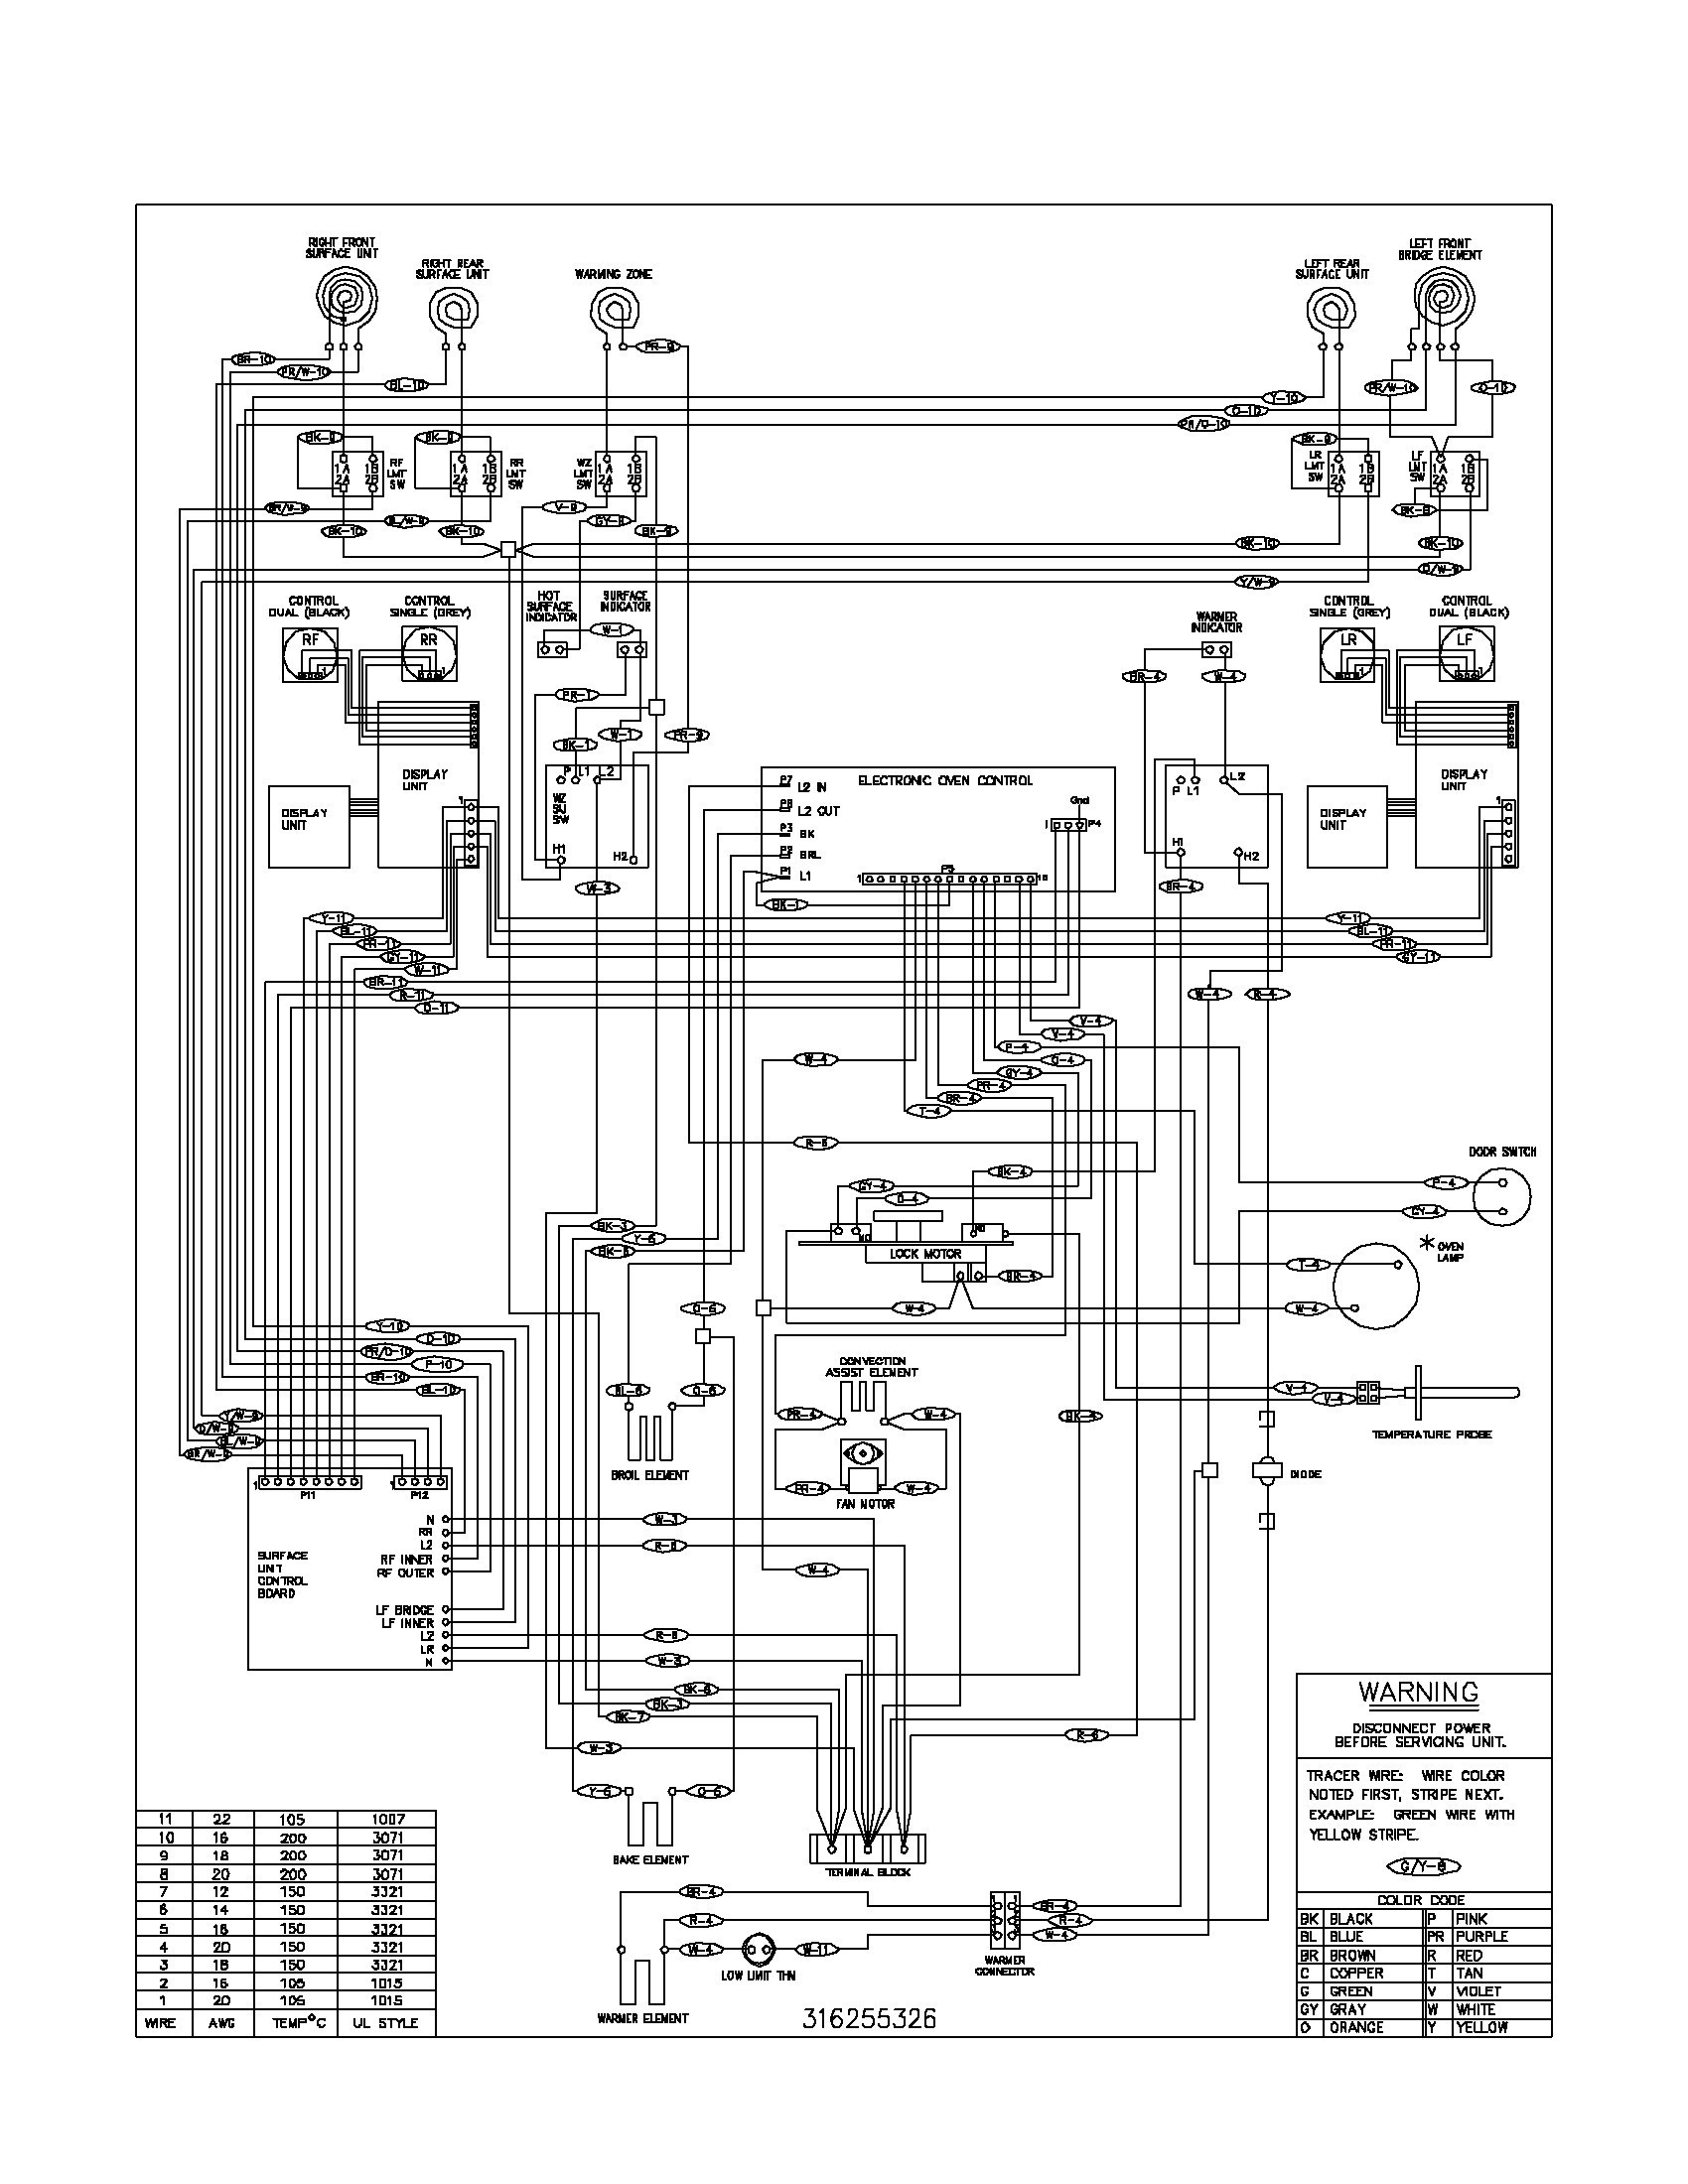 Heil 7000 Furnace Wiring Diagram Photocell Wiring Diagram For Wiring Diagram Schematics